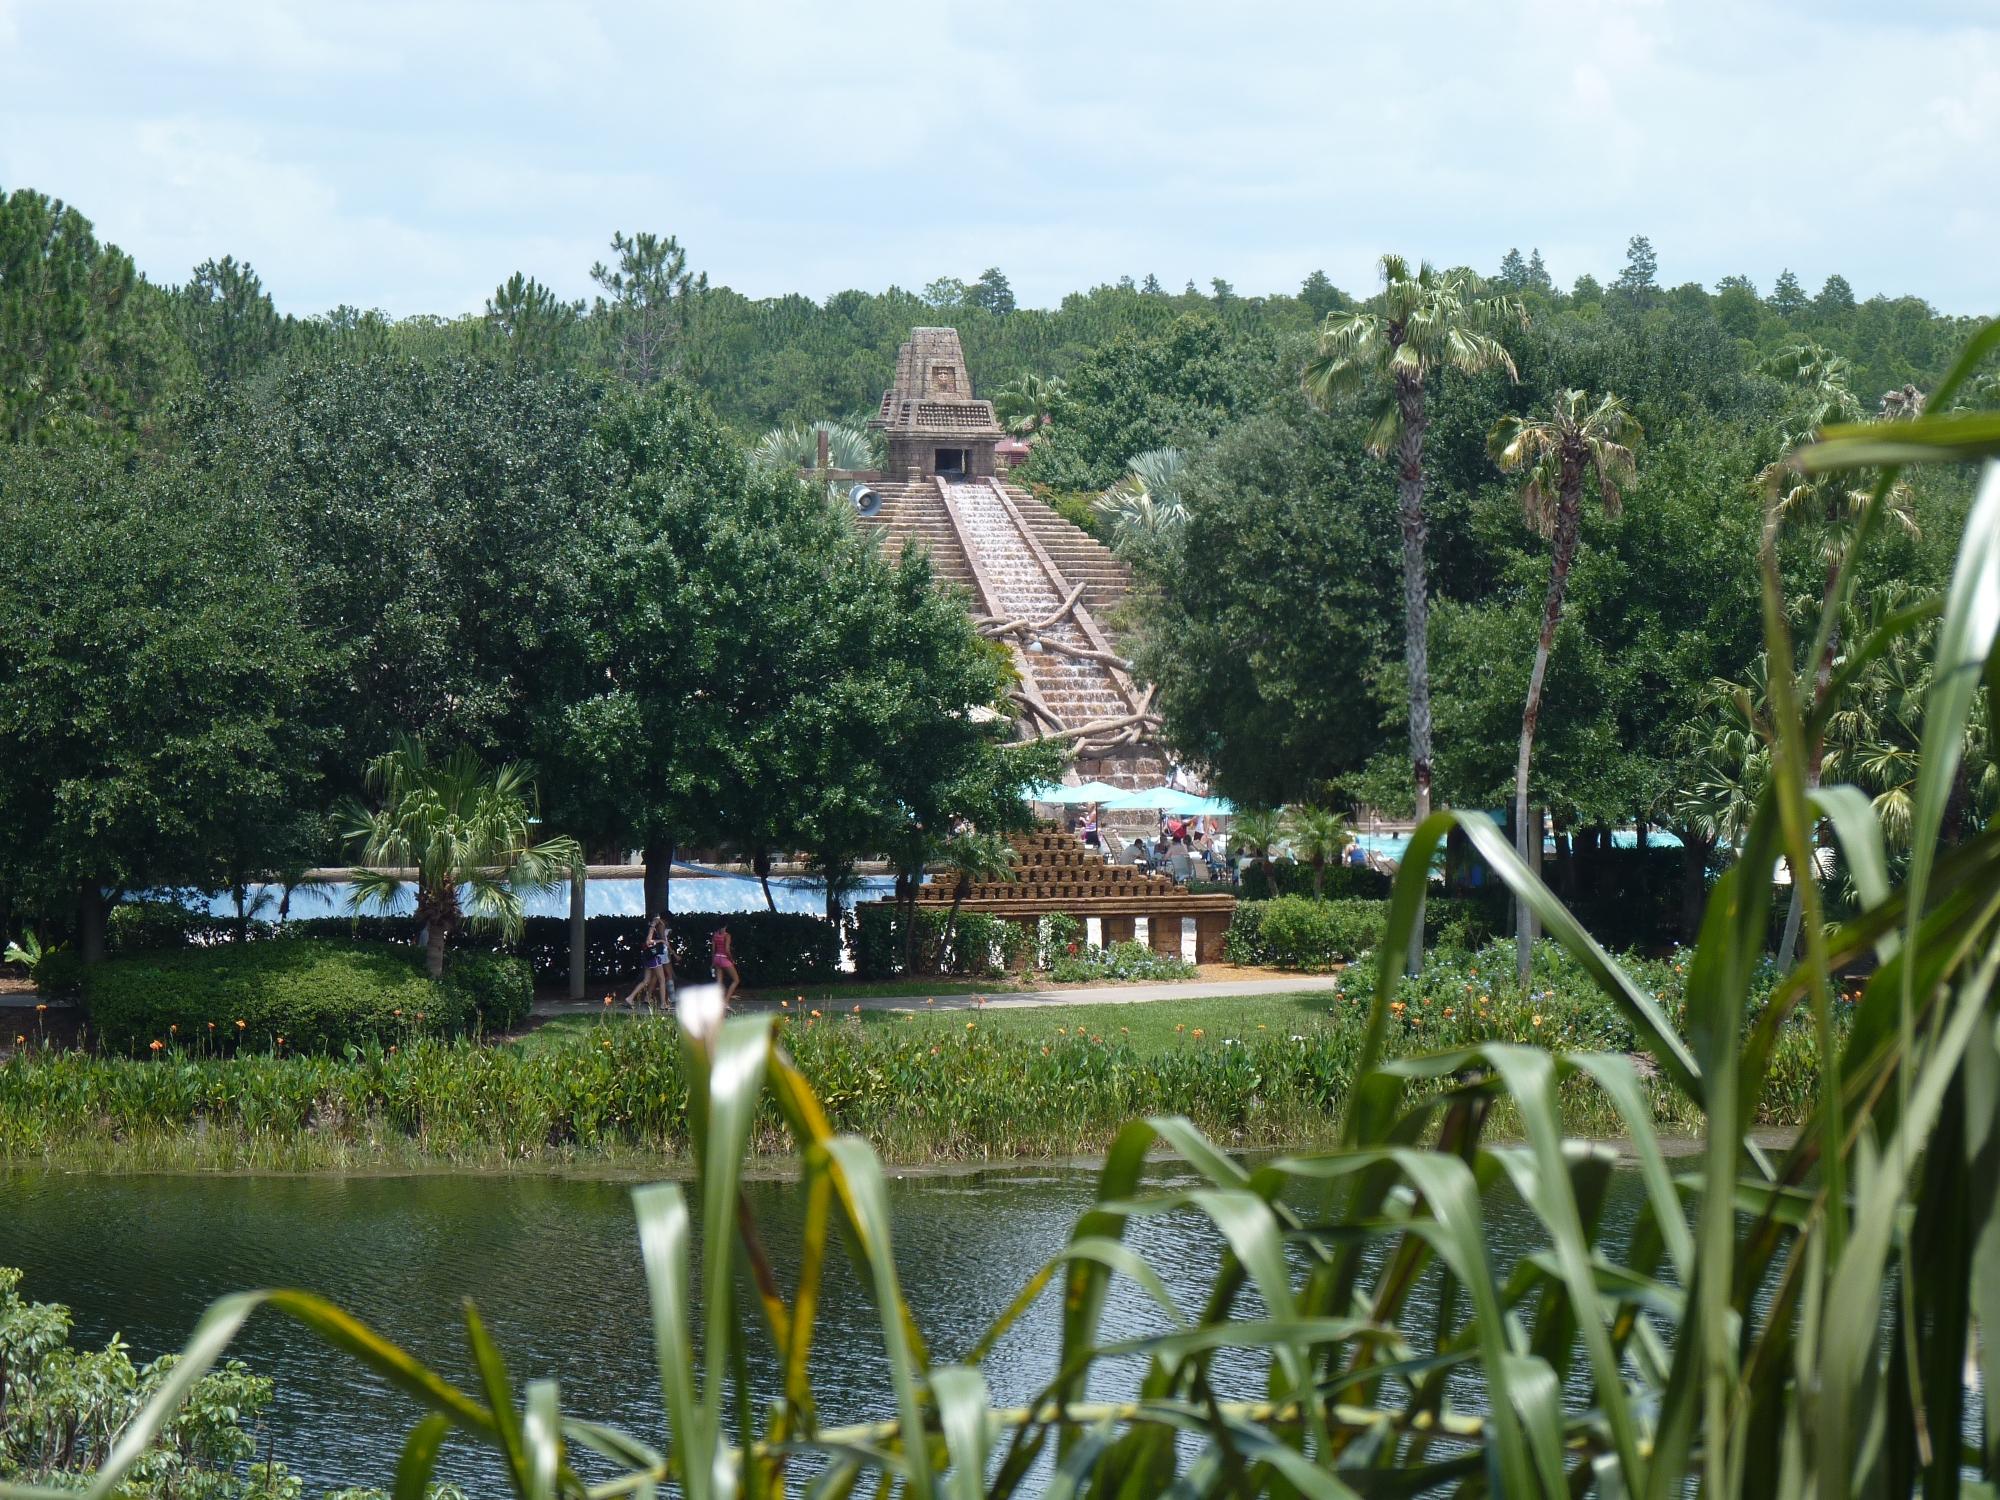 Jud's Disney Picture of the Day: Pyramid